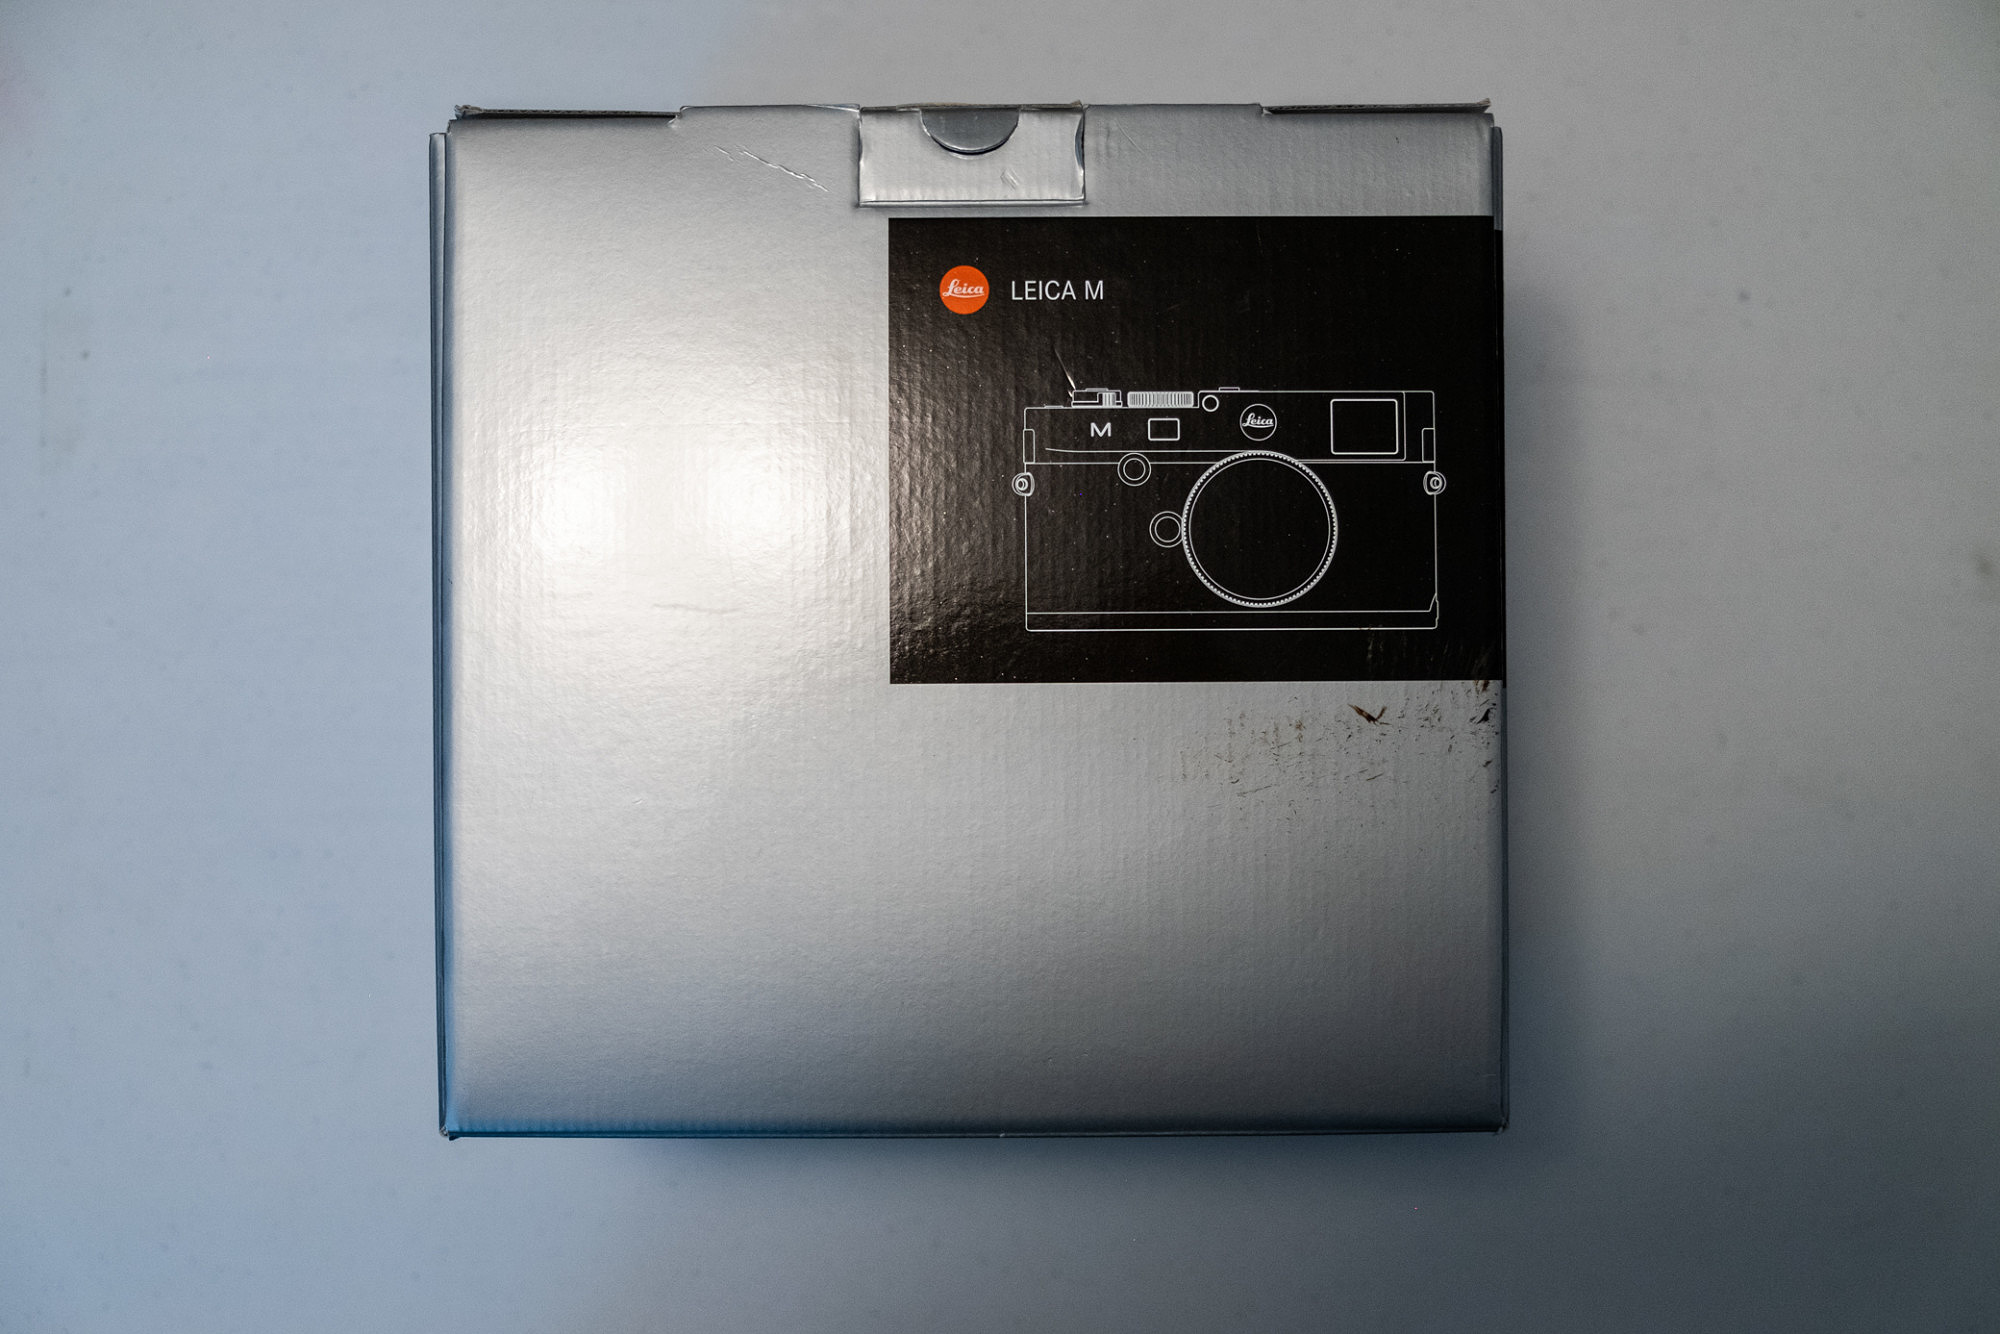 leica-m240-for-sale-18